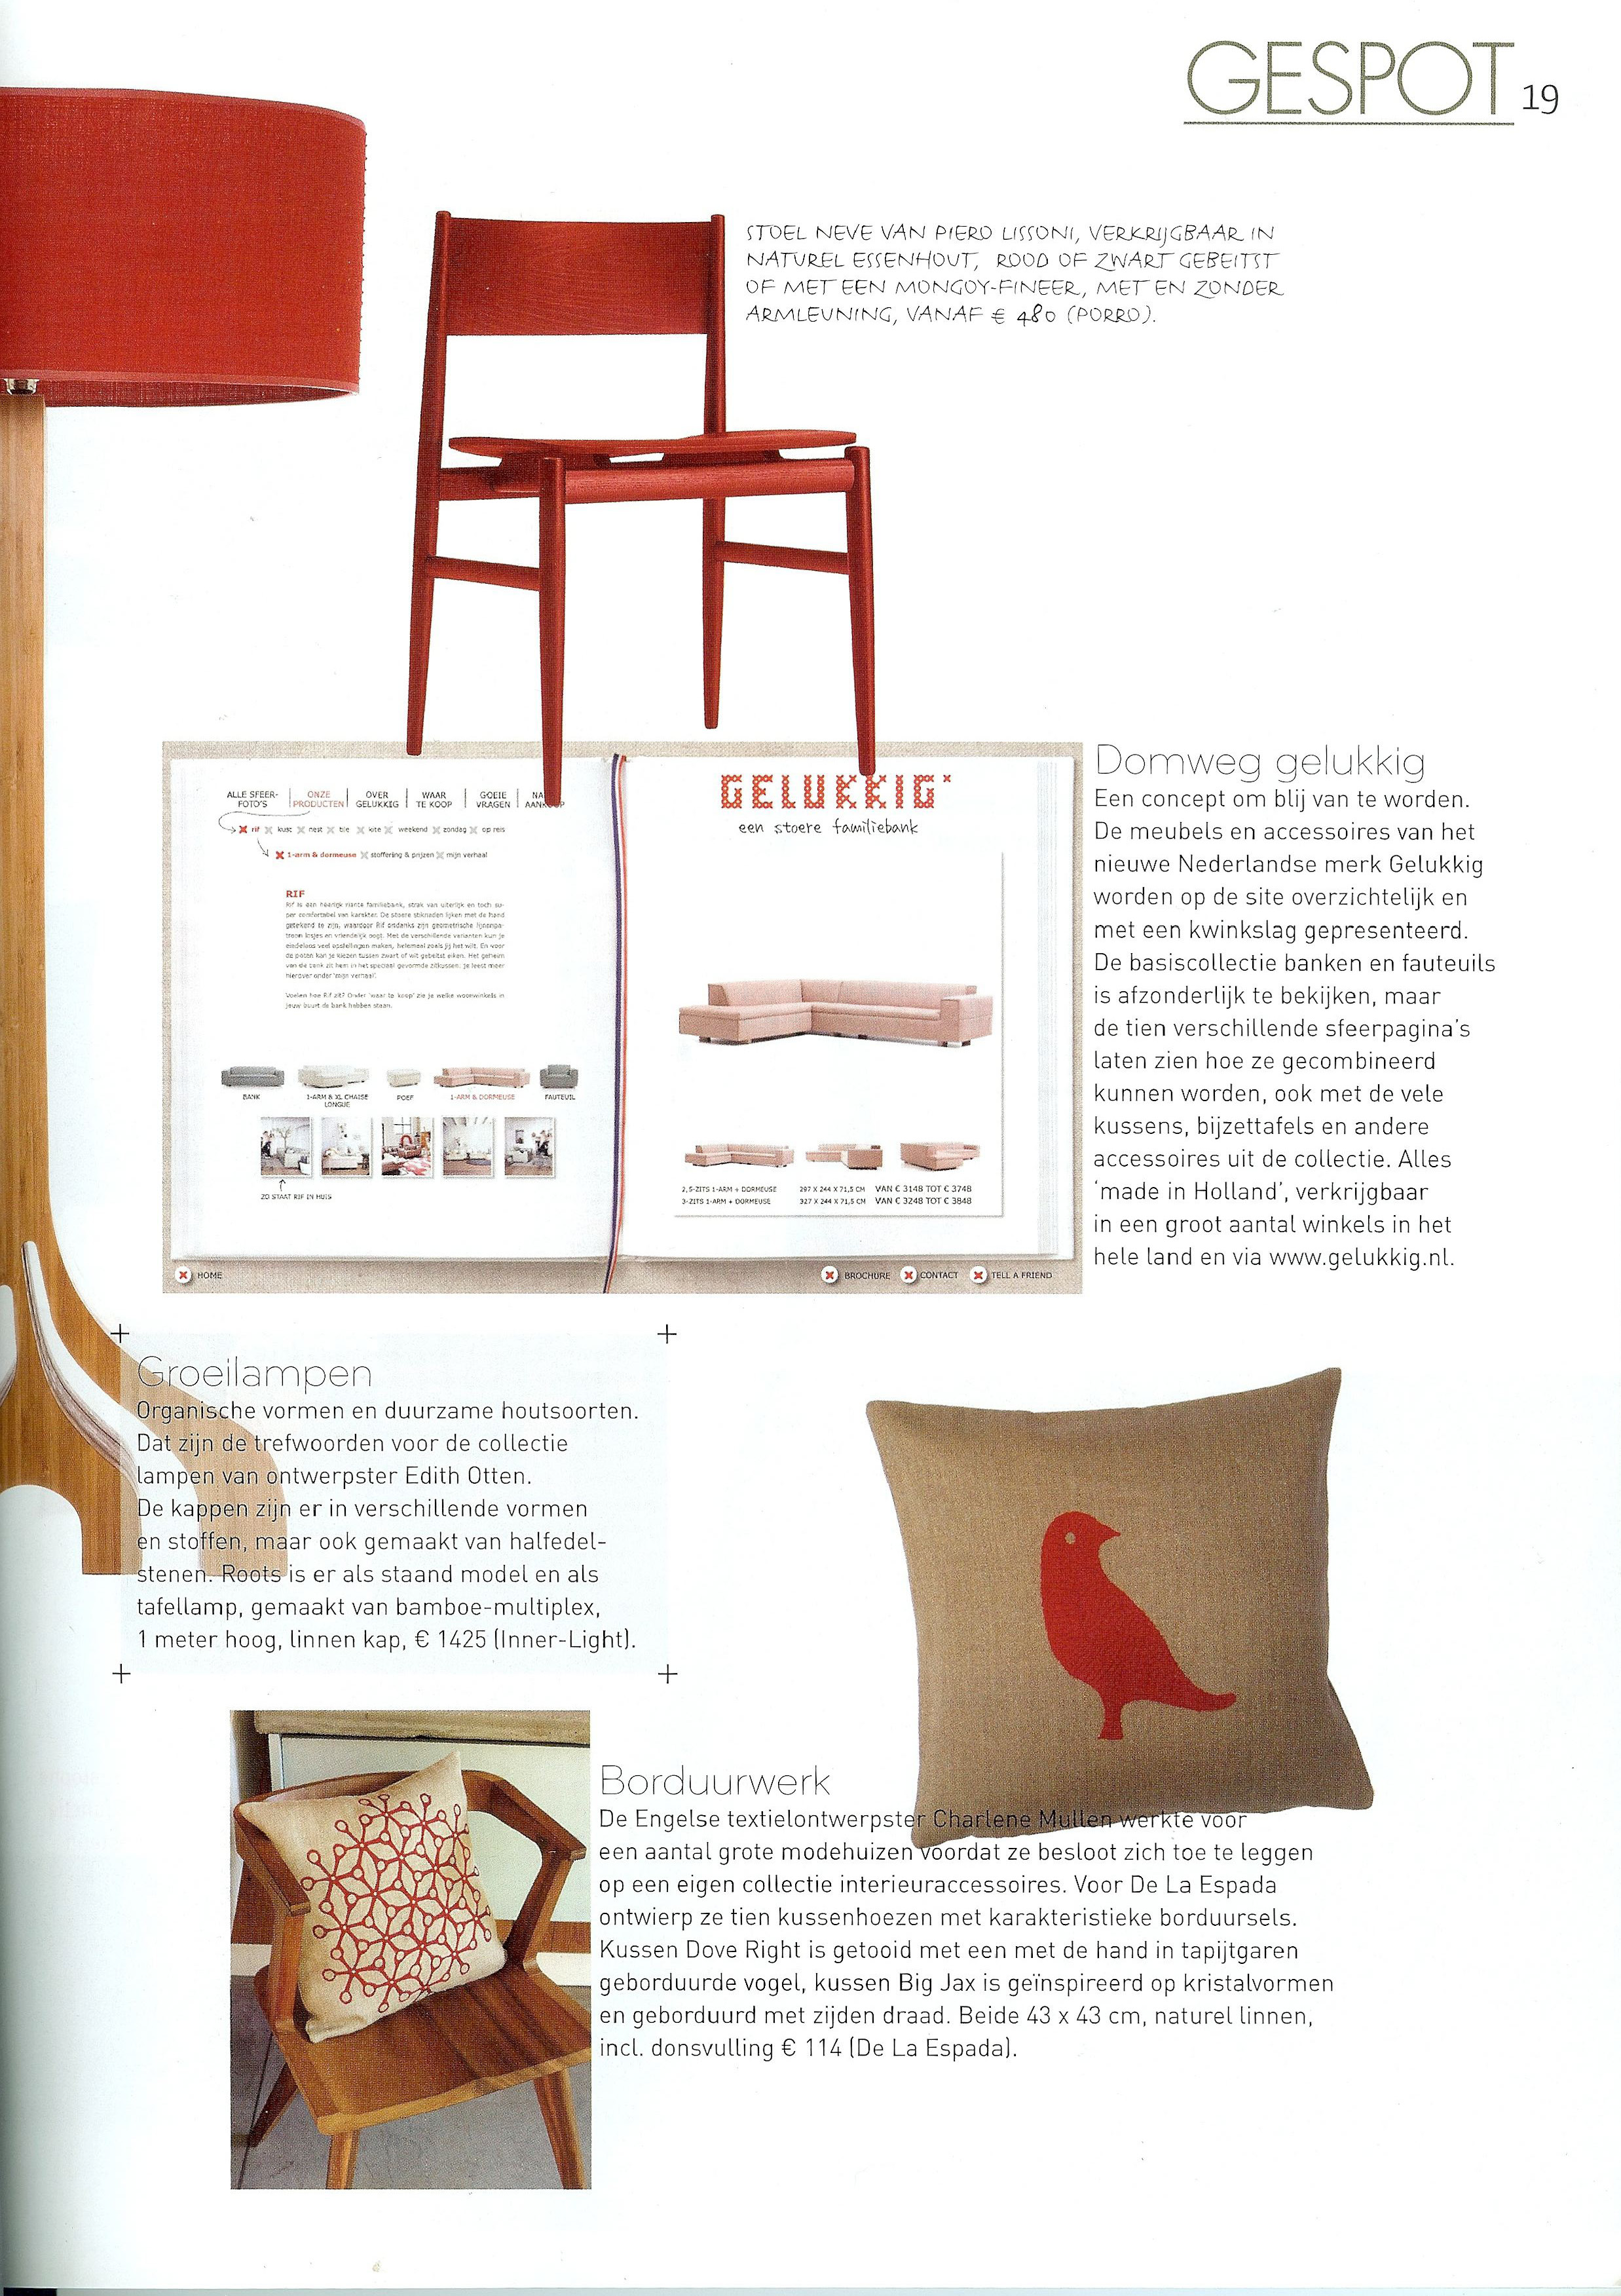 Phenomenal Suite Wood Elle Decoration March 2011 Ibusinesslaw Wood Chair Design Ideas Ibusinesslaworg